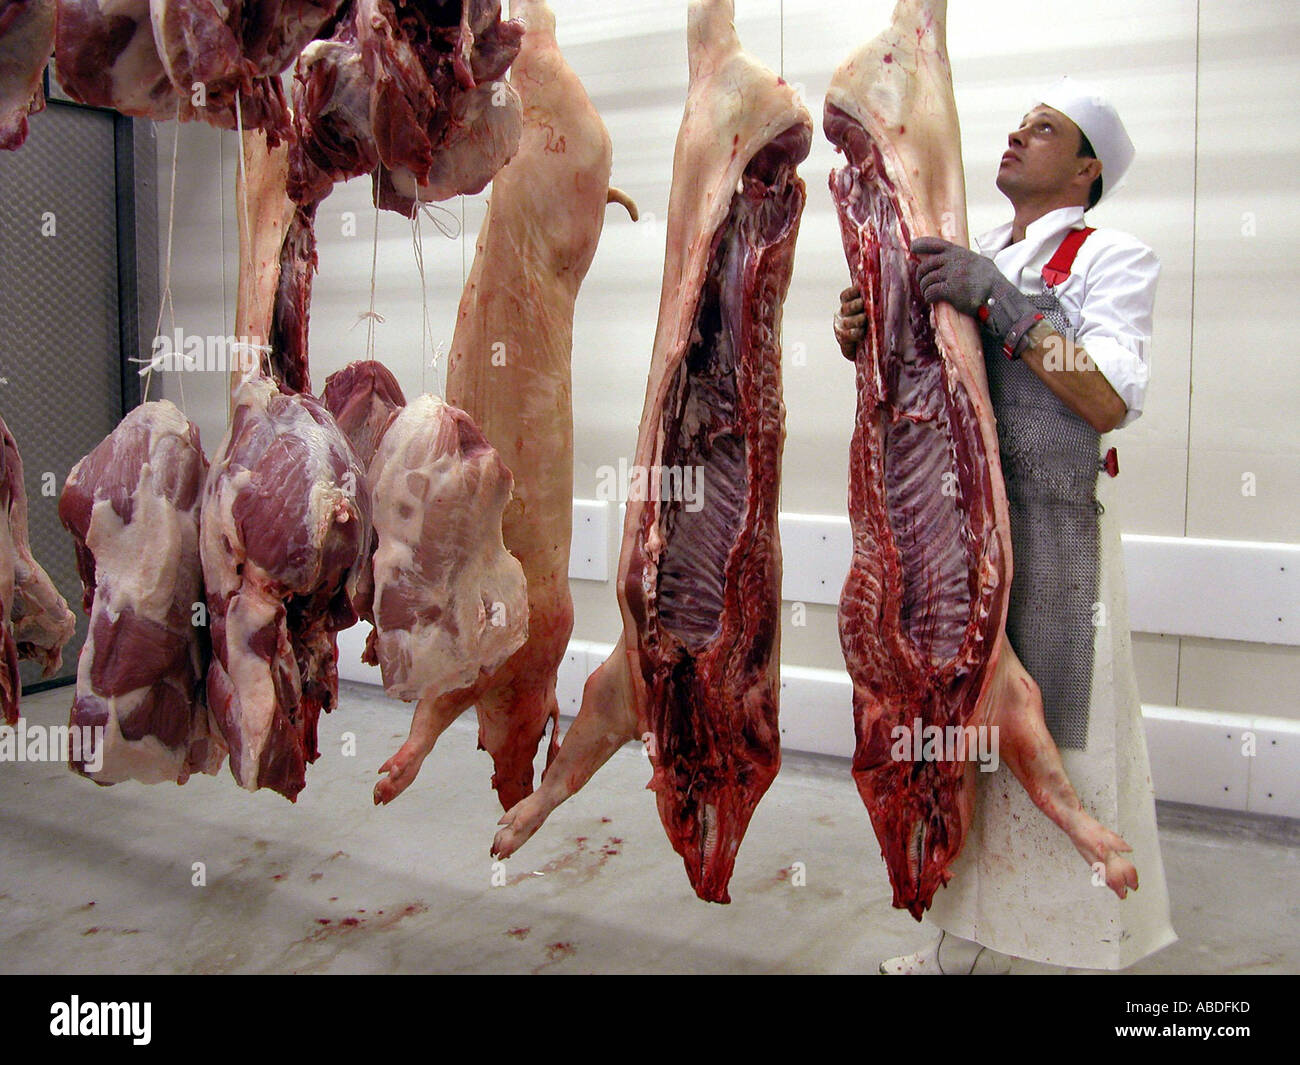 In the slaughter house - Stock Image